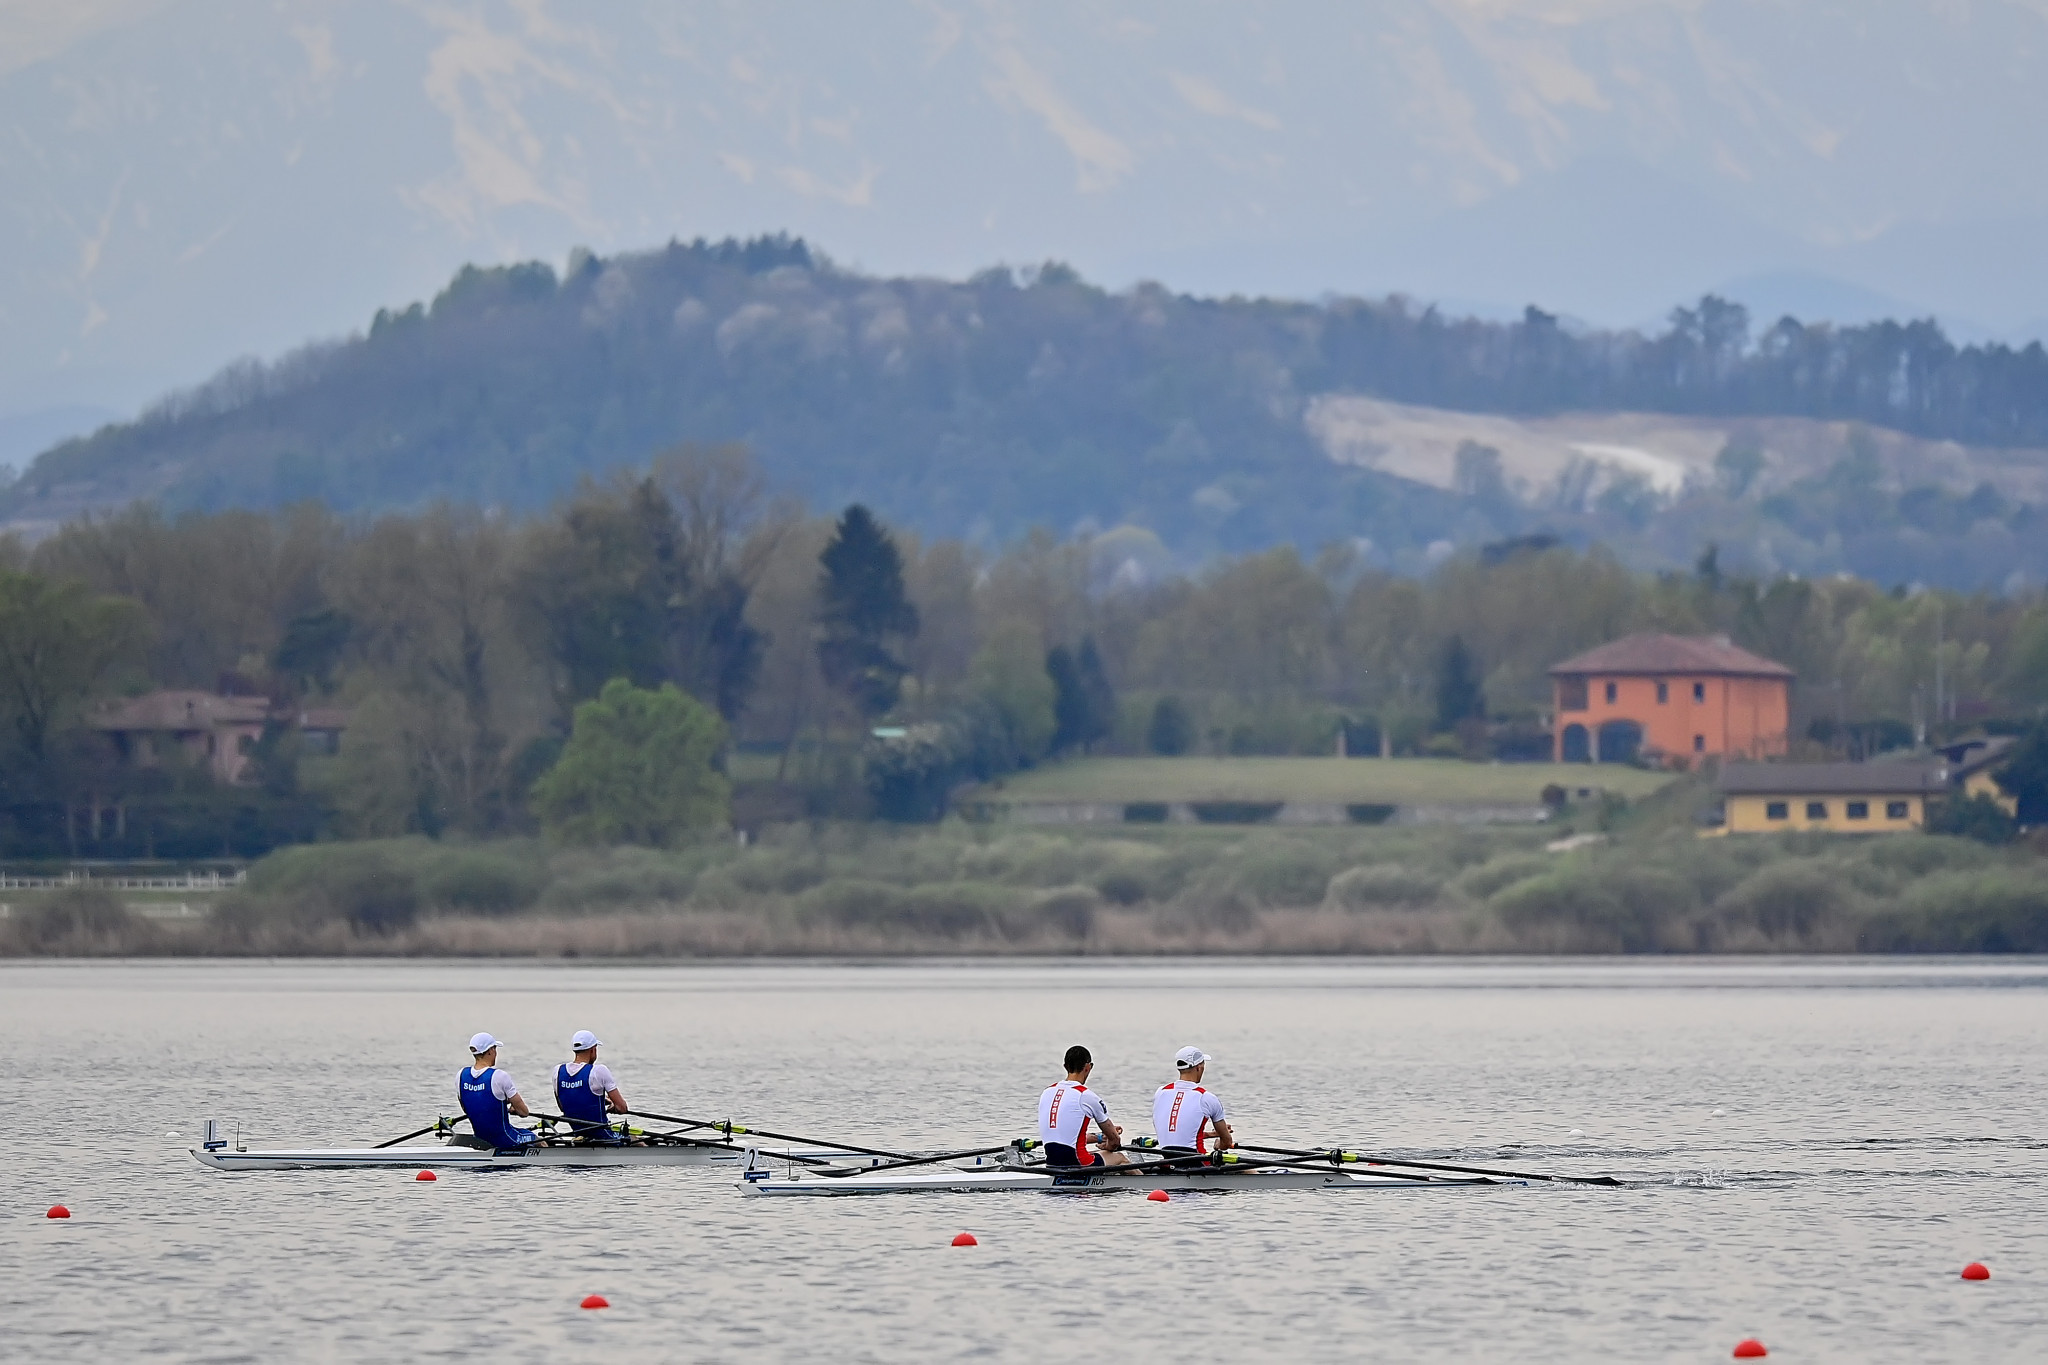 Strong winds postpone European rowing qualifier for Tokyo 2020 until Thursday